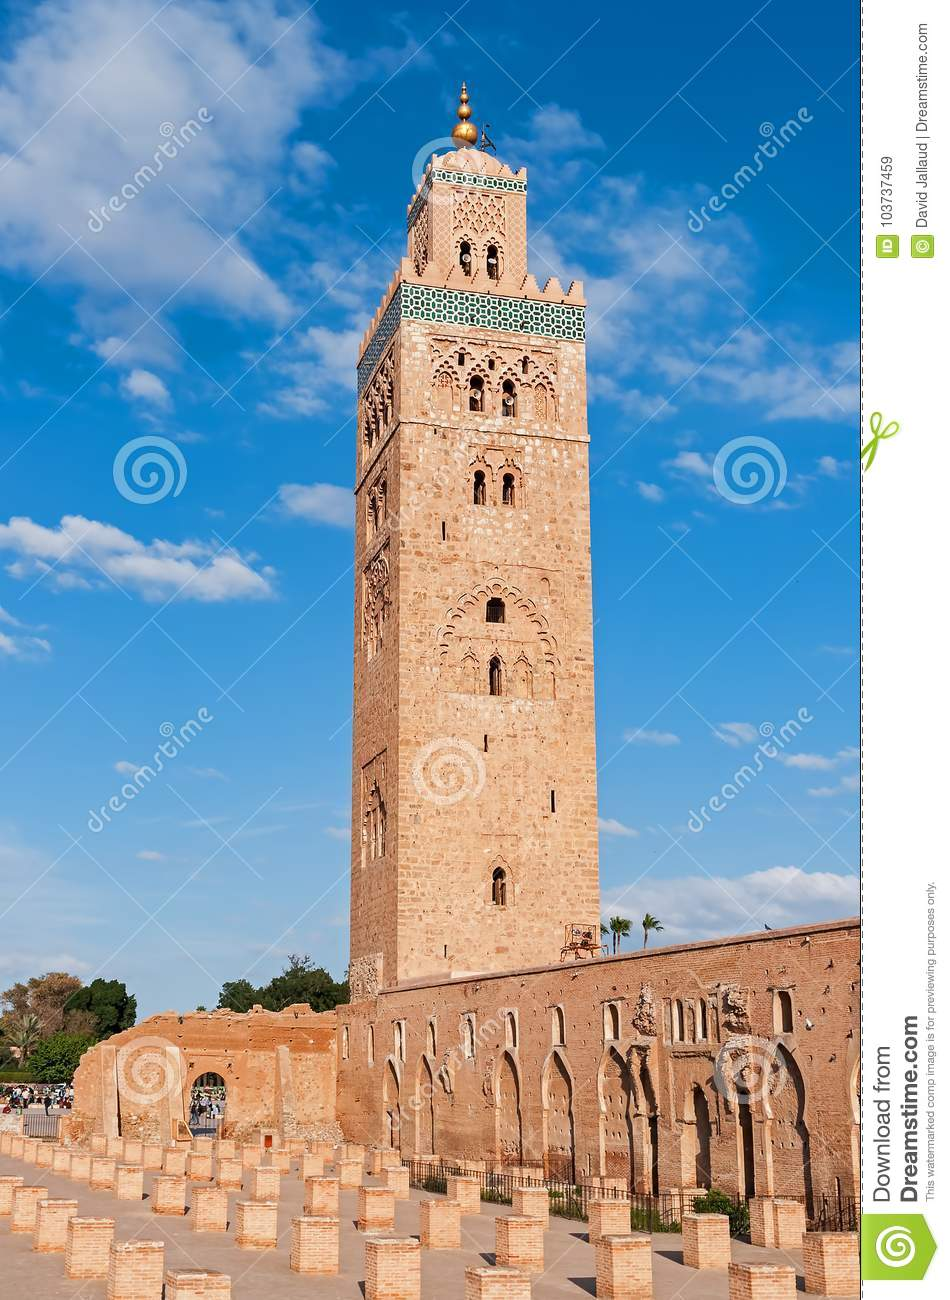 Minaret Of The Koutoubia Mosque Marrakech Morocco Stock Image Image Of African Architecture 103737459